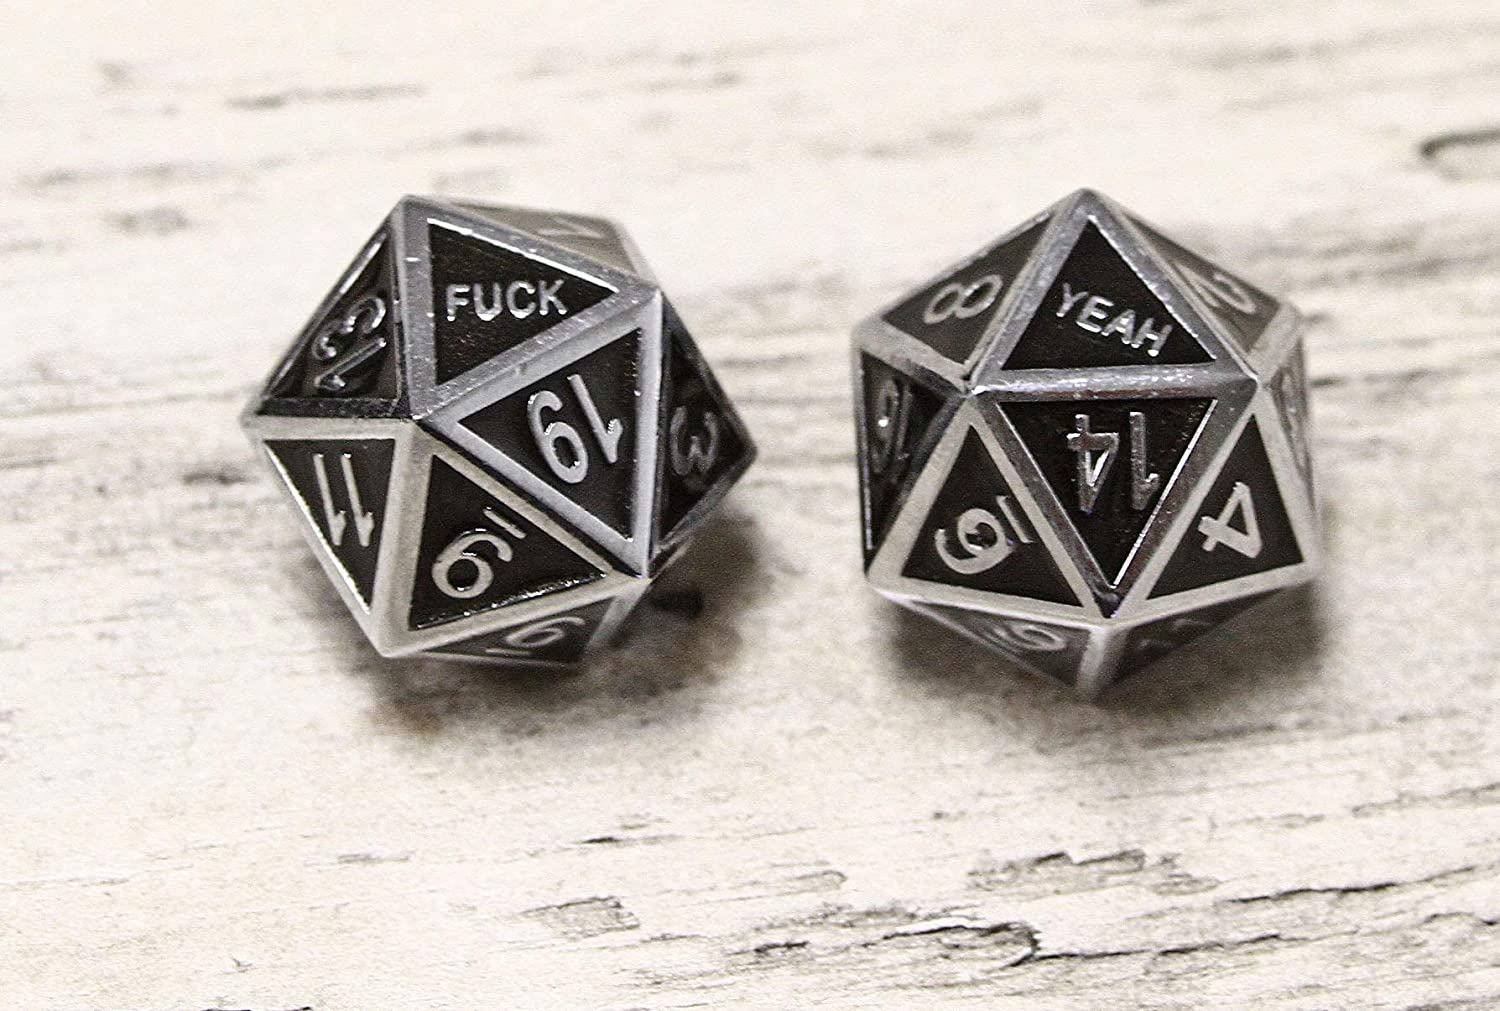 Forged Dice Co Polyhedral Dice Set with Dice Storage Tin Metal Dice Fuck Yeah D20 Set of 2 Metal DND Dice and Gaming Dice for Dungeons and Dragons RPG Games